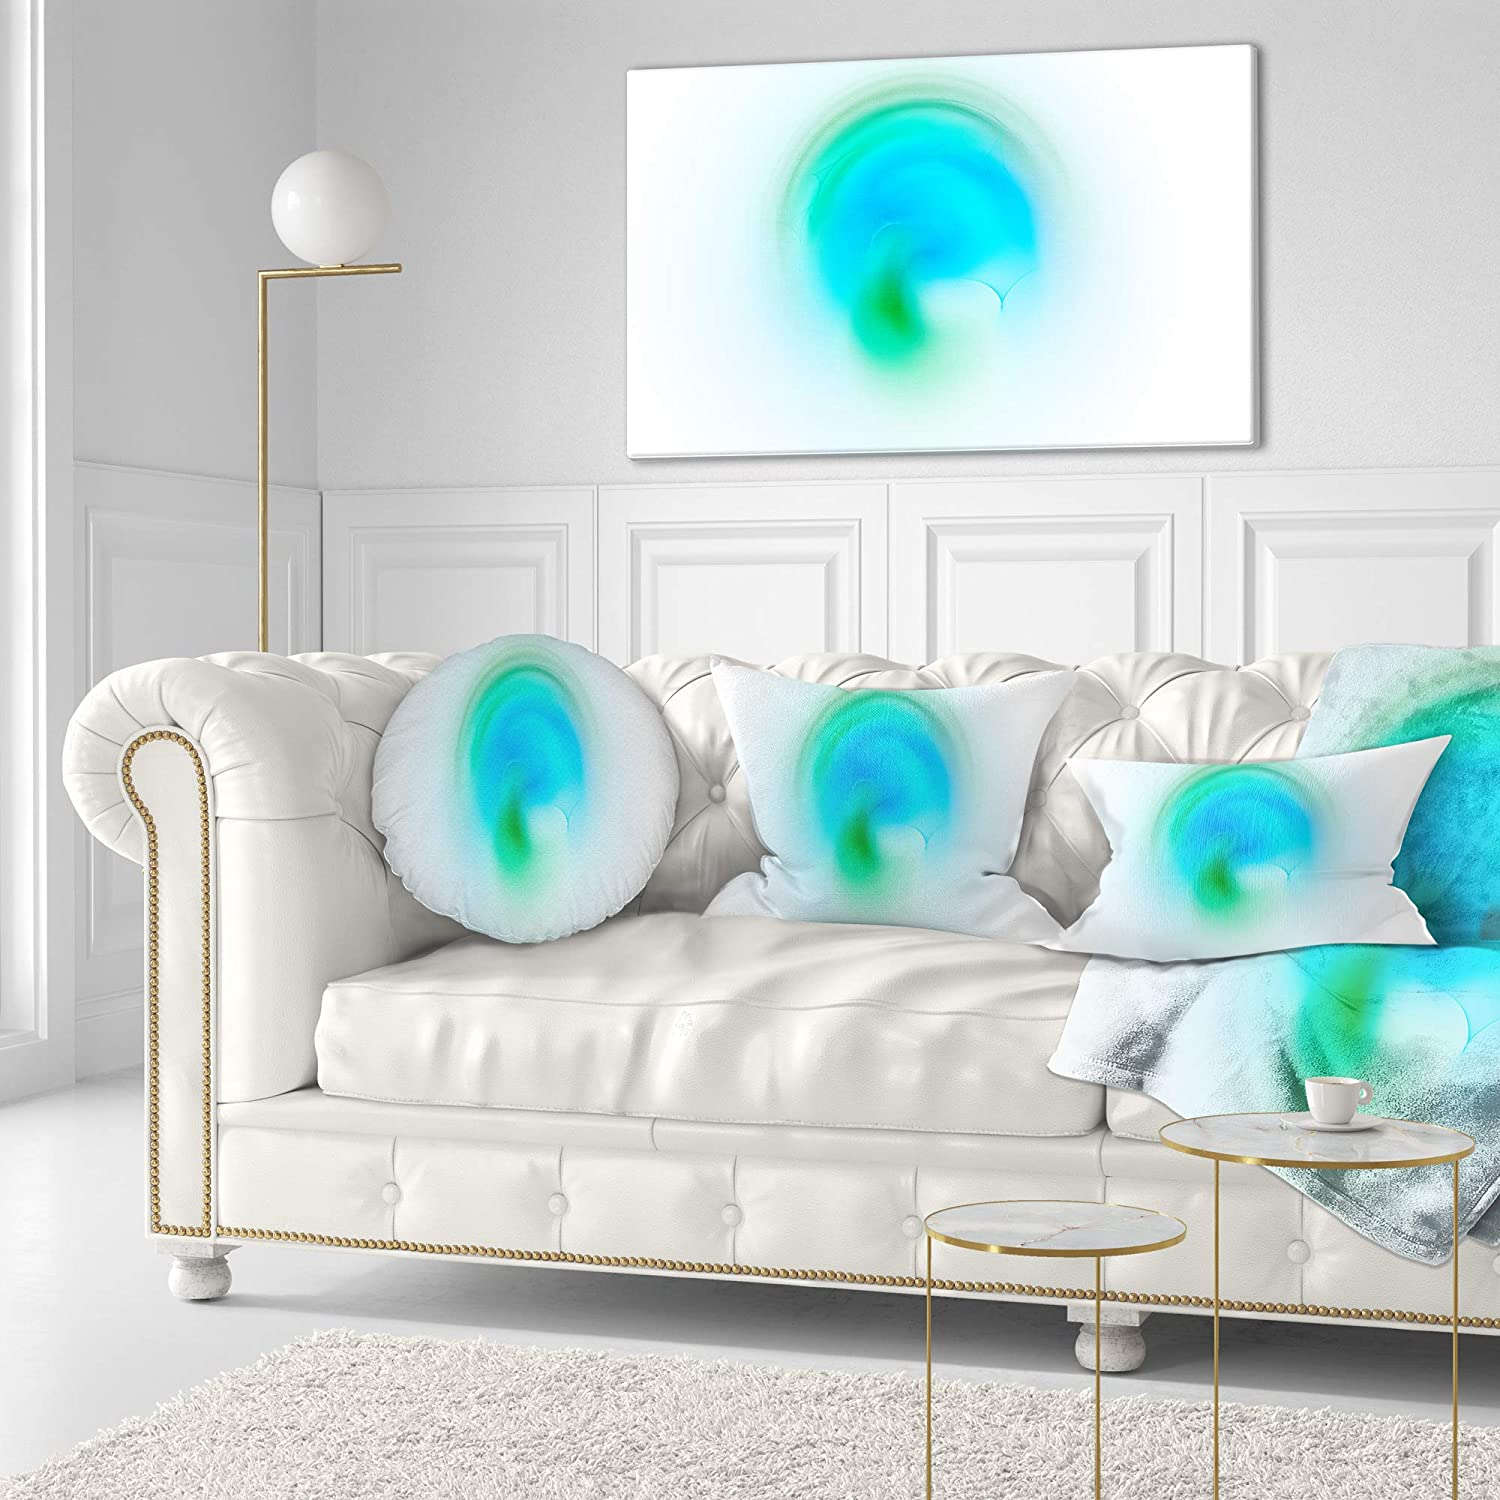 Designart CU16154-12-20 Green Luminous Misty Sphere Abstract Lumbar Cushion Cover for Living Room Sofa Throw Pillow 12 in x 20 in in